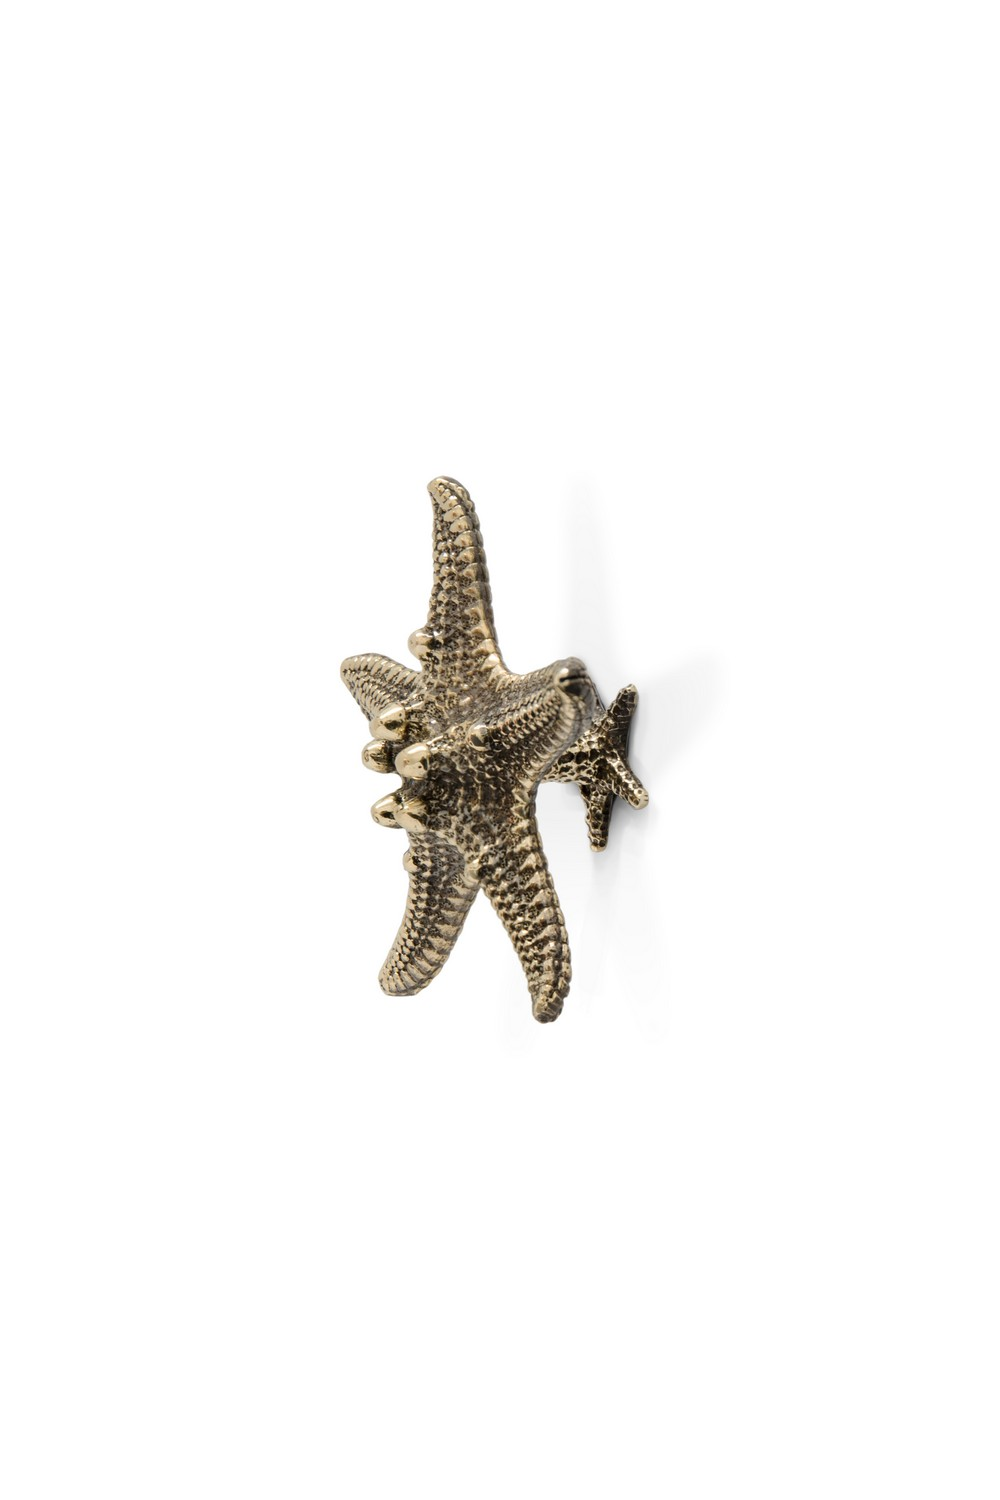 Sea Creature-Inspired Decorative Hardware for a Home Decor Freshen Up 6 decorative hardware Sea Creature-Inspired Decorative Hardware for a Home Decor Freshen Up Sea Creature Inspired Decorative Hardware for a Home Decor Freshen Up 6